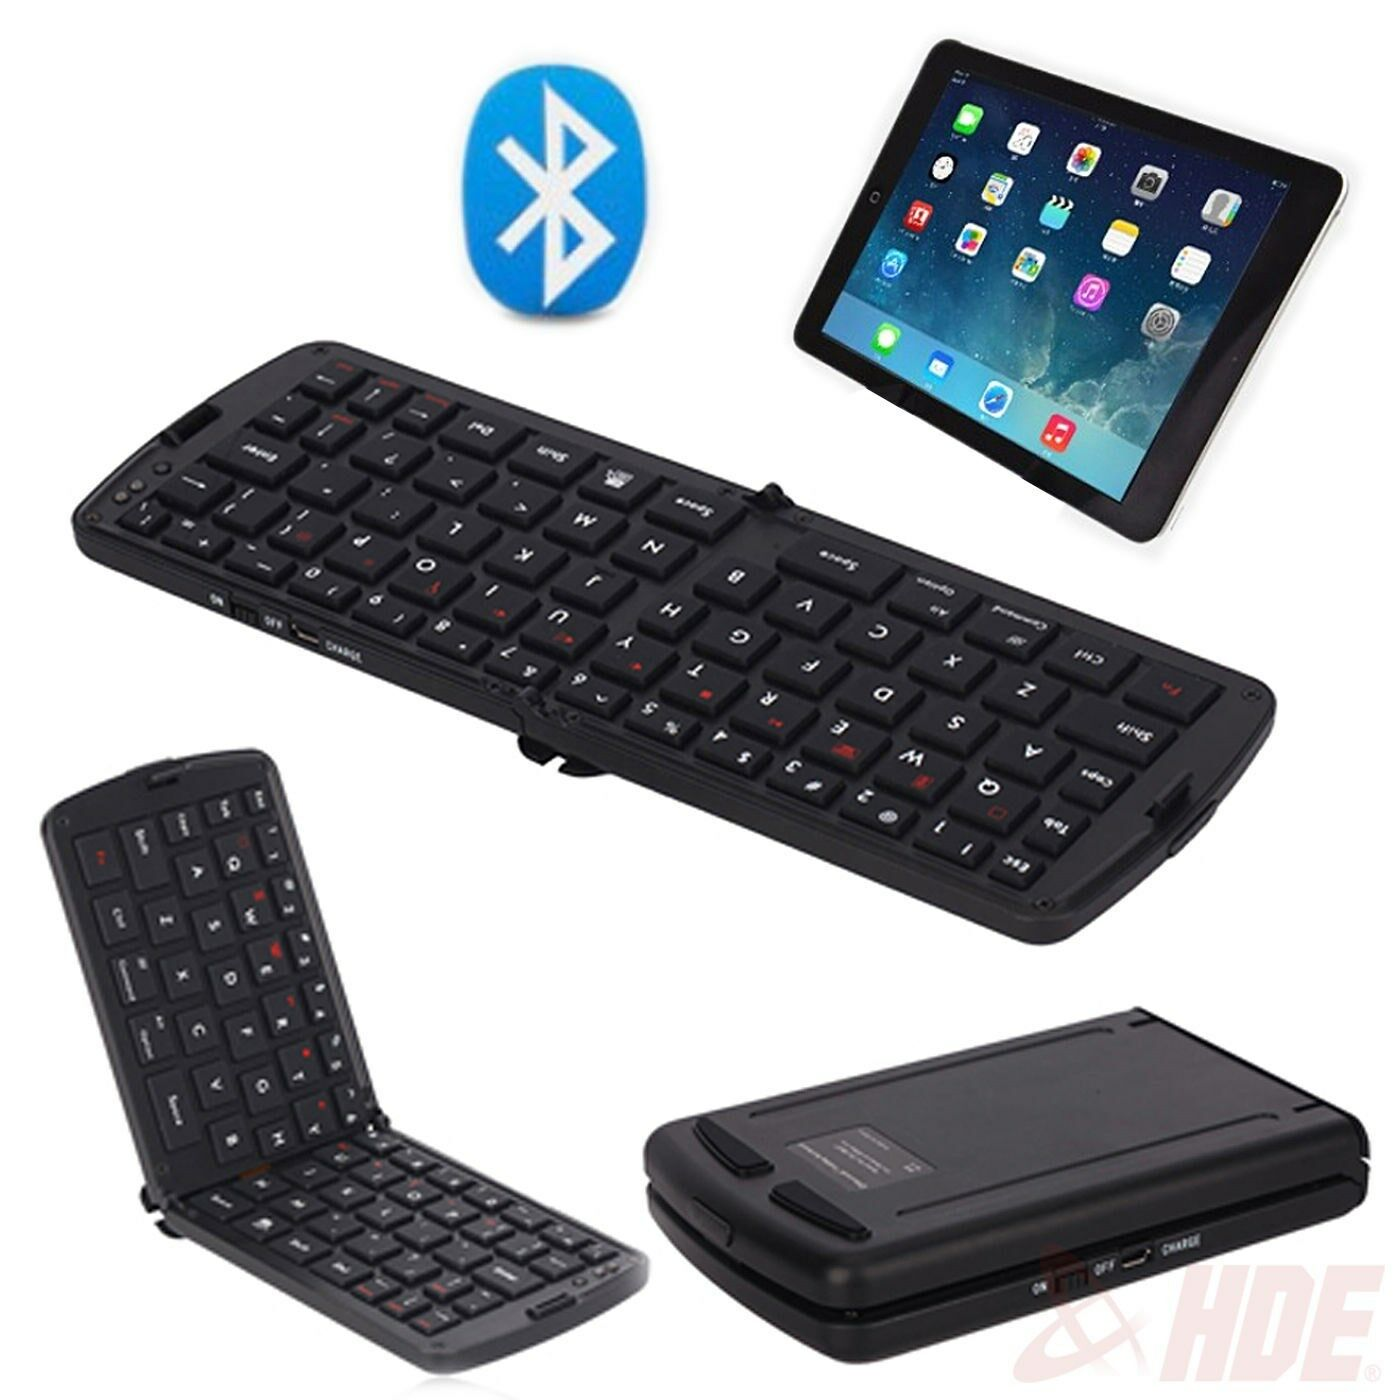 Bluetooth Keyboard For Ipad And Android: Folding Mini Bluetooth Wireless Keyboard Pad For IPhone IPad-Android Tablet PC